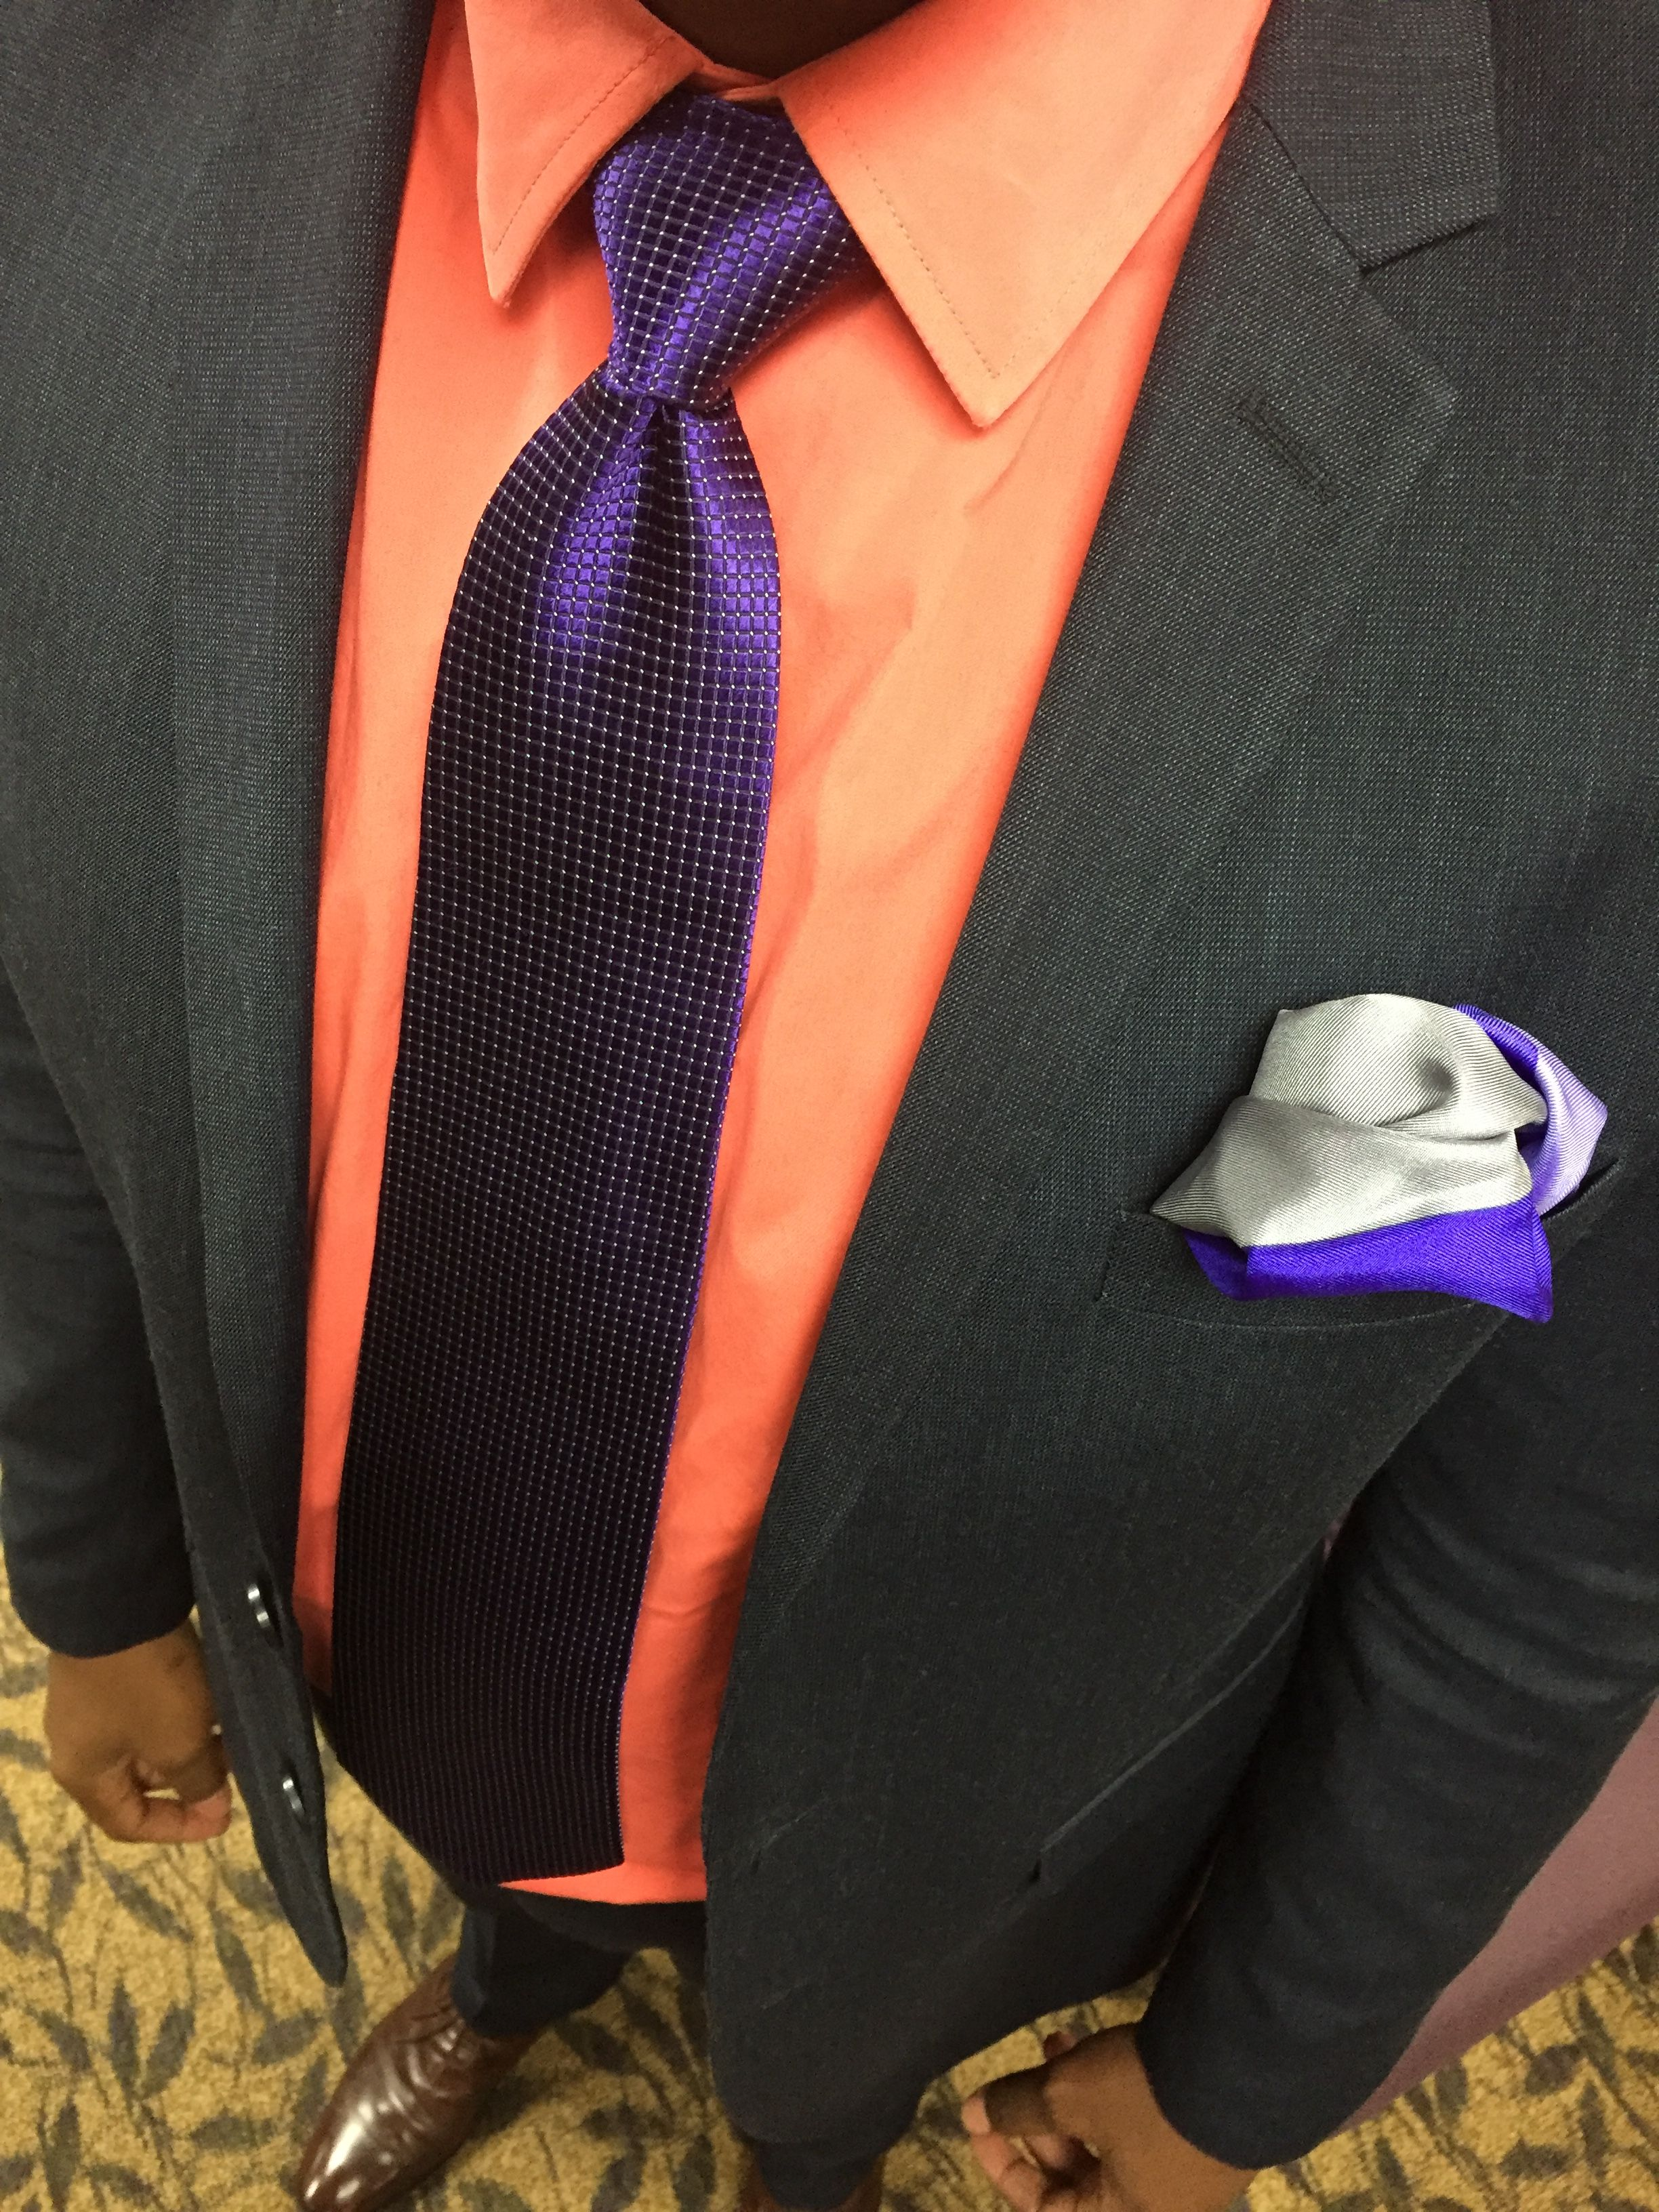 Want it get the tie at brothertie.com